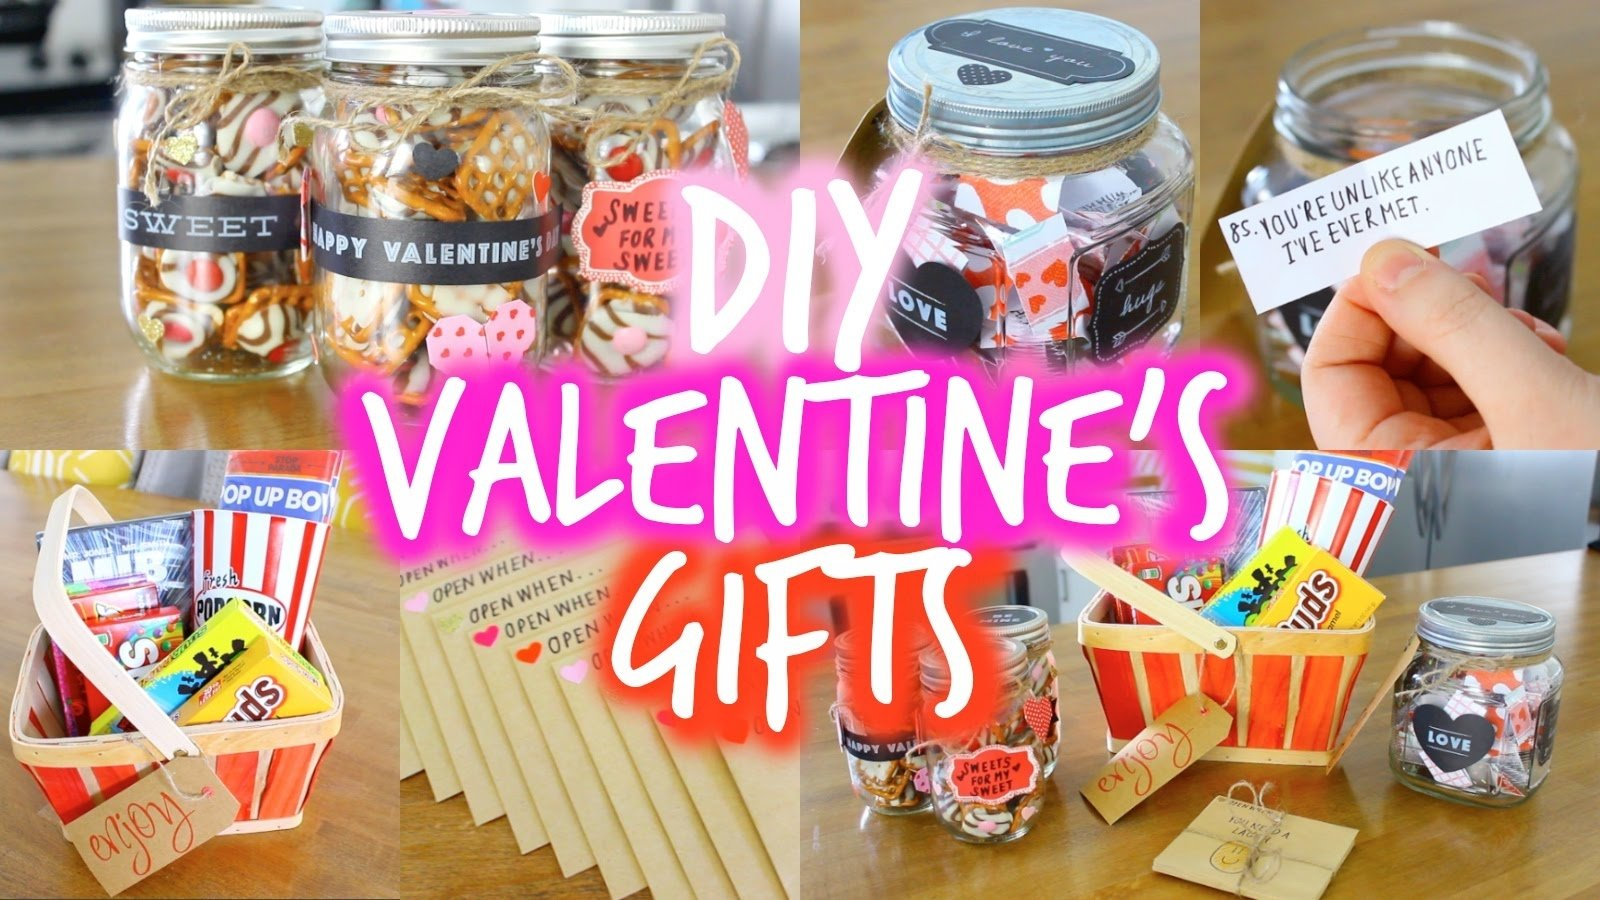 10 Stunning Homemade Valentines Day Ideas Him easy diy valentines day gift ideas for your boyfriend youtube 14 2020